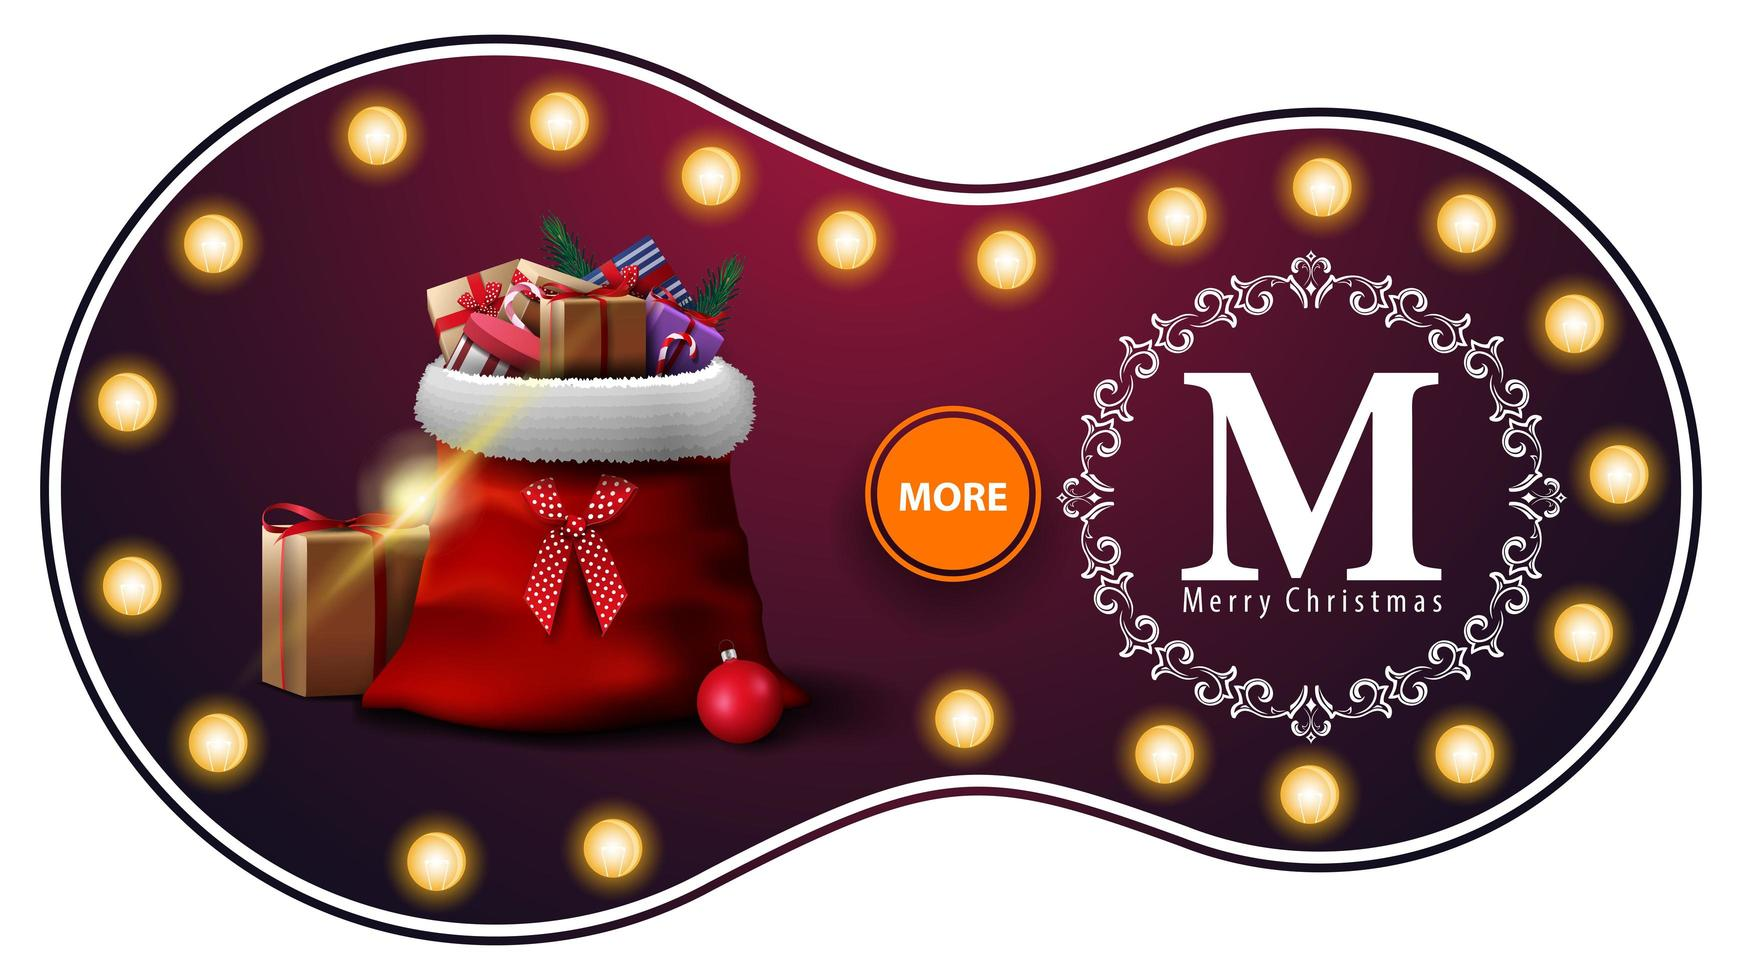 Merry Christmas, purple discount banner with light bulbs, openwork greeting logo and Santa Claus bag with presents vector